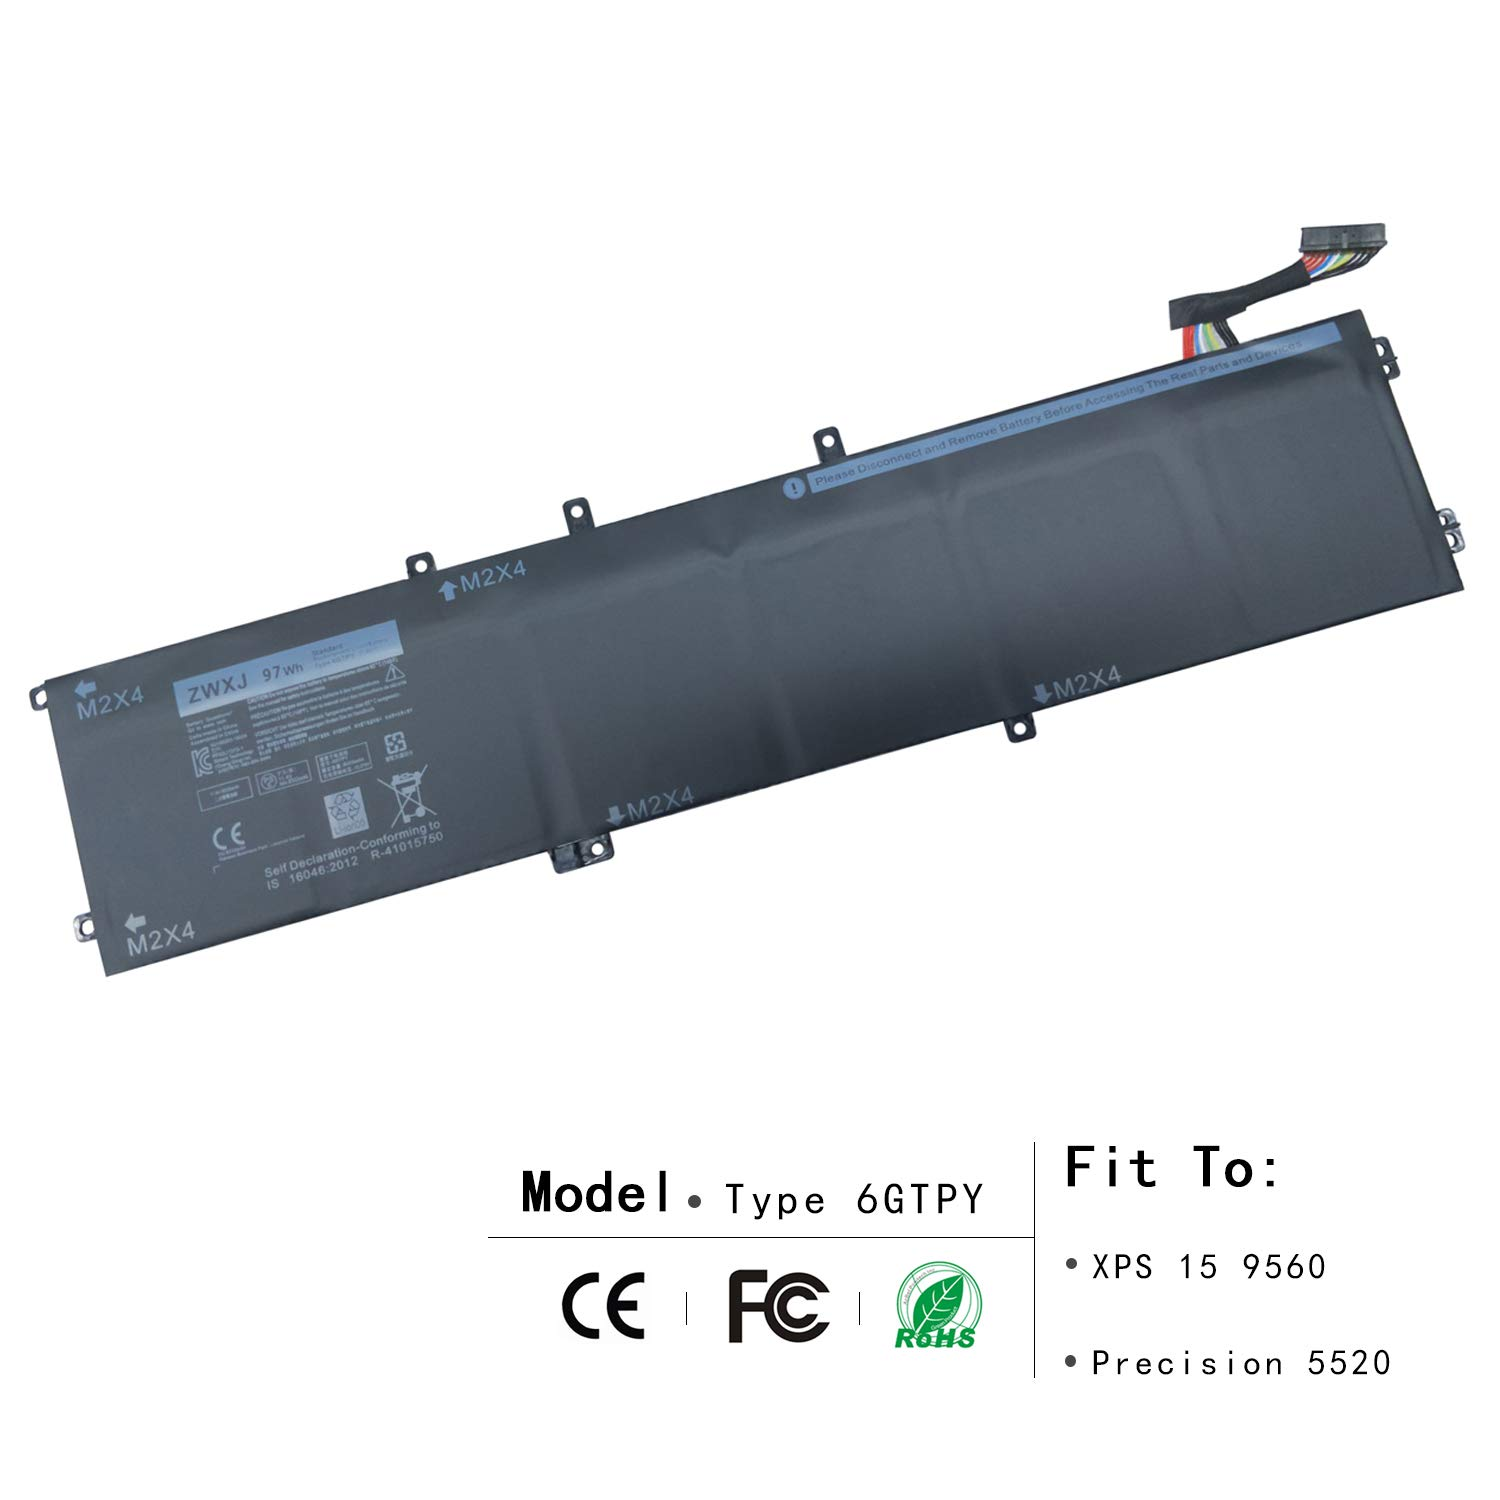 ZWXJ New Laptop Battery Type 6GTPY(11.4V 97WH) For Dell XPS 15 9560 Precision 5520 M5520 5XJ28 6GTPY